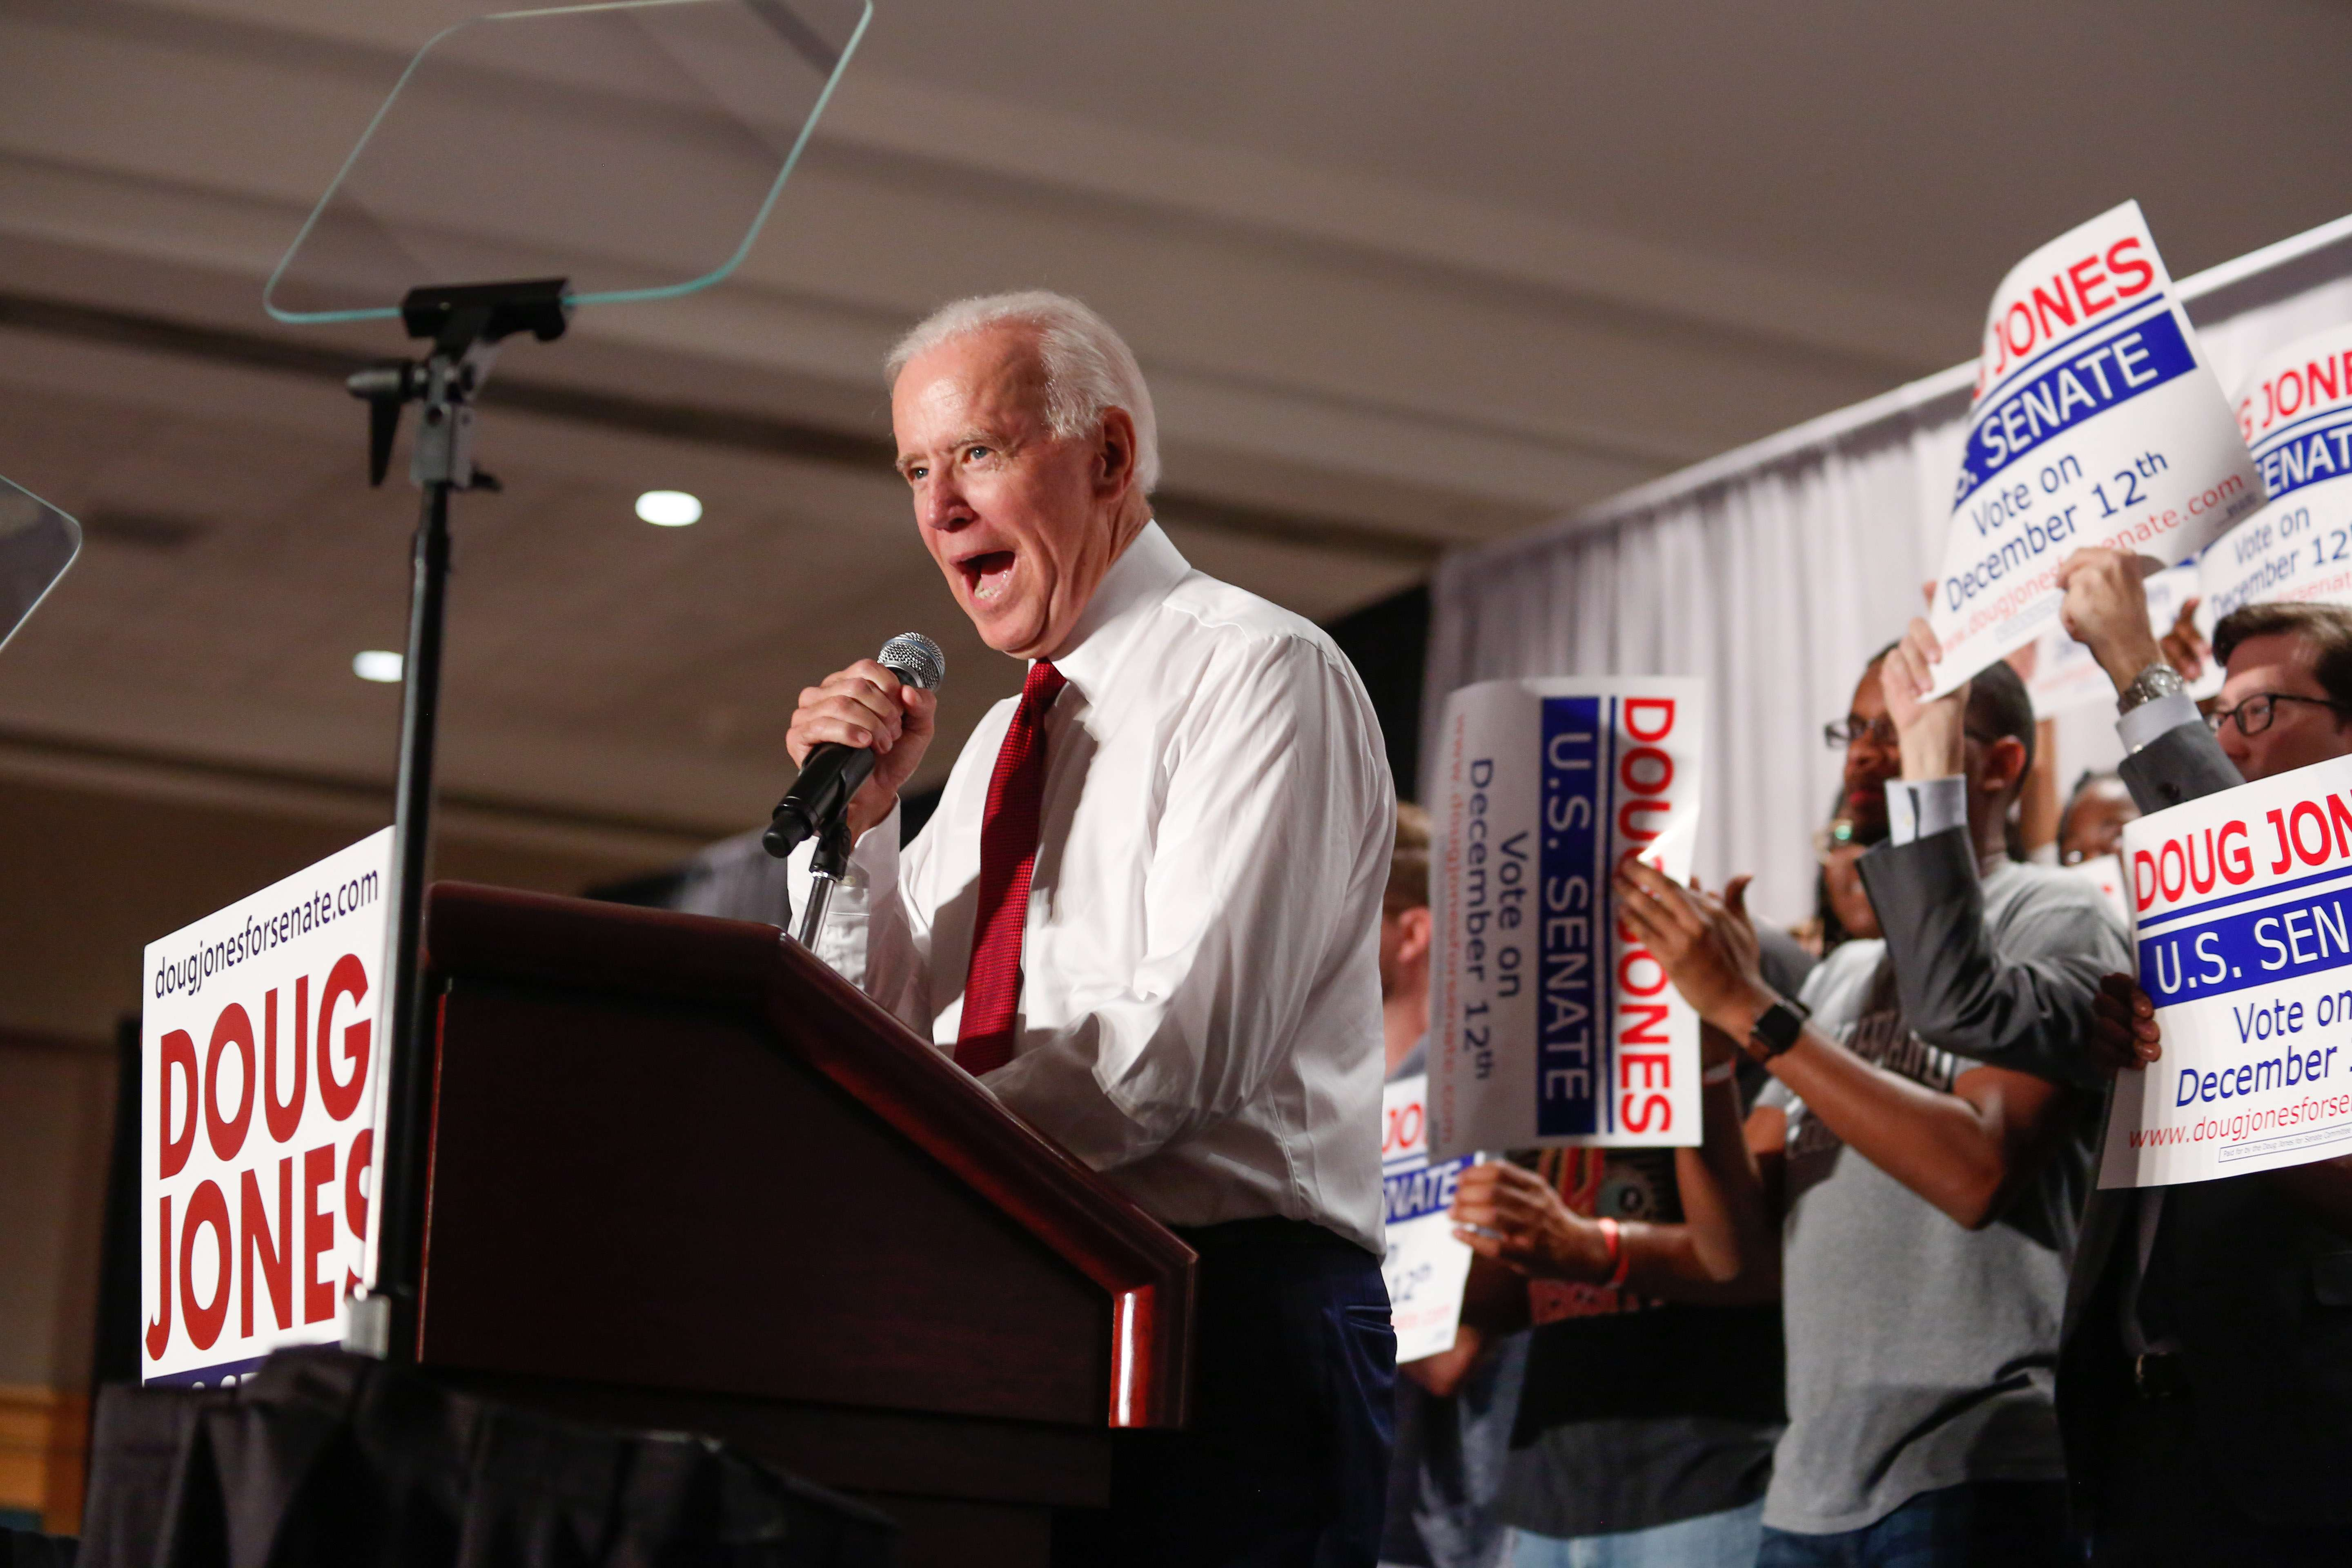 Former Vice President Joe Biden speaks at an event in support for U.S. Senate candidate Doug Jones on October 3, 2017. (Image Credit: Doug Jones for Senate Campaign)